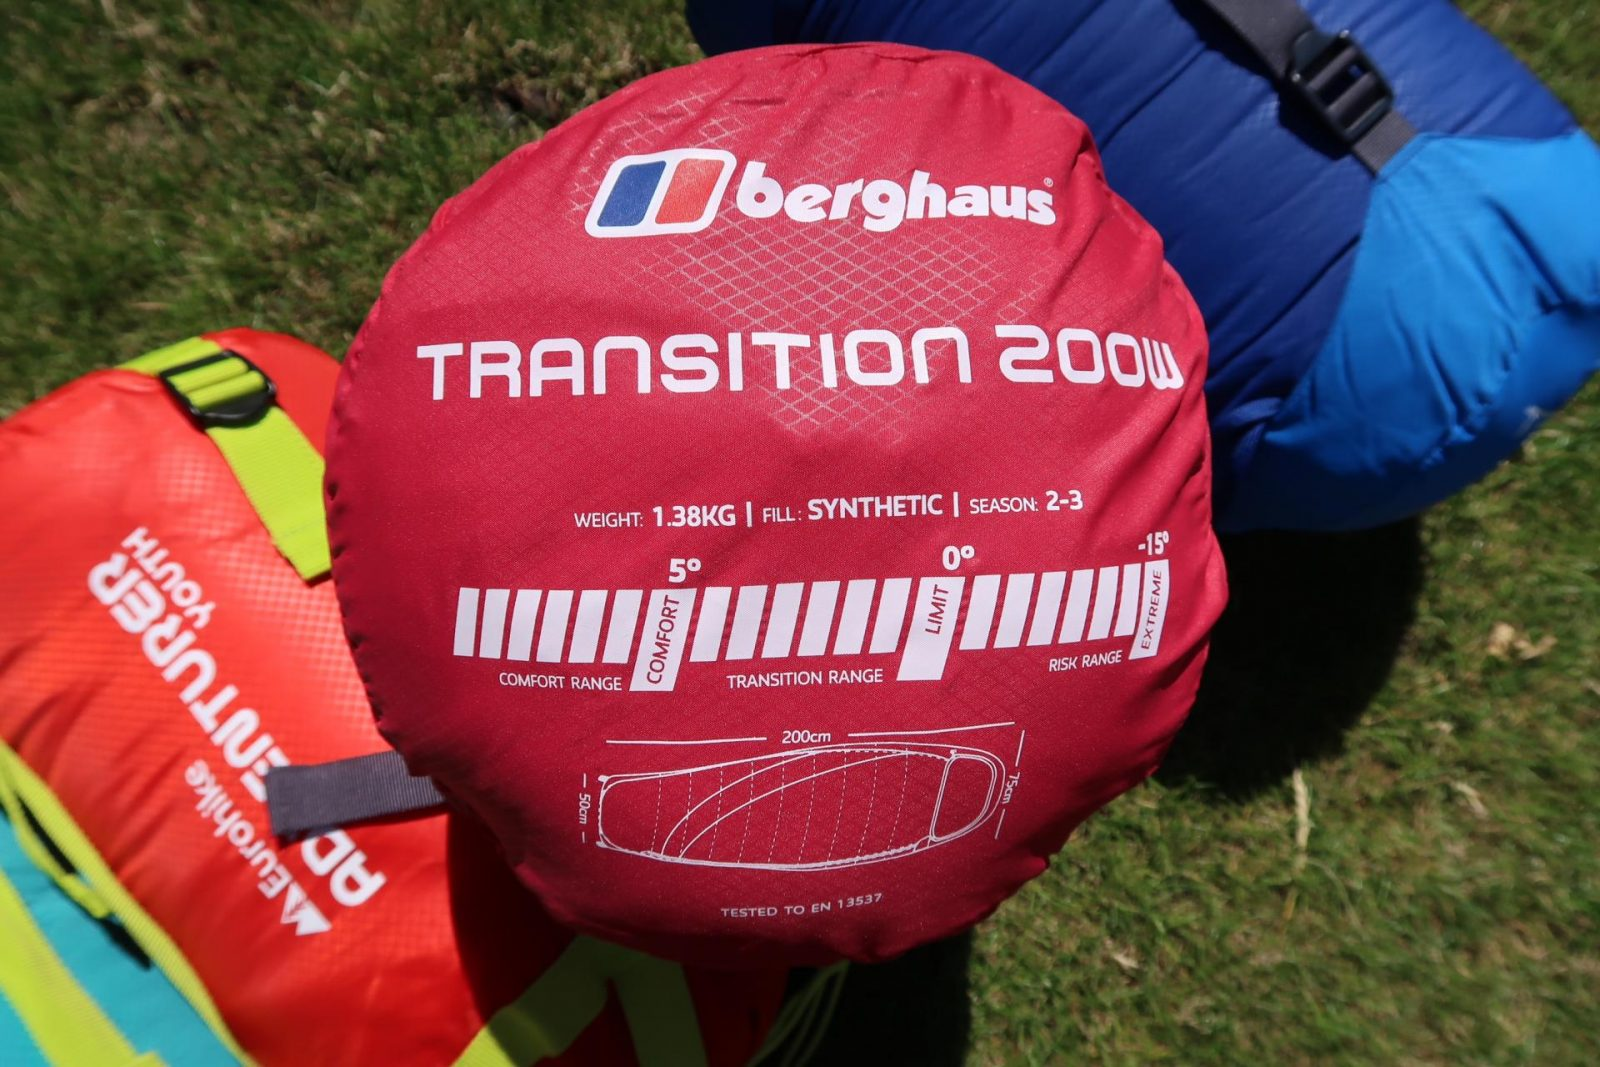 Berghaus transition 200w sleeping bag